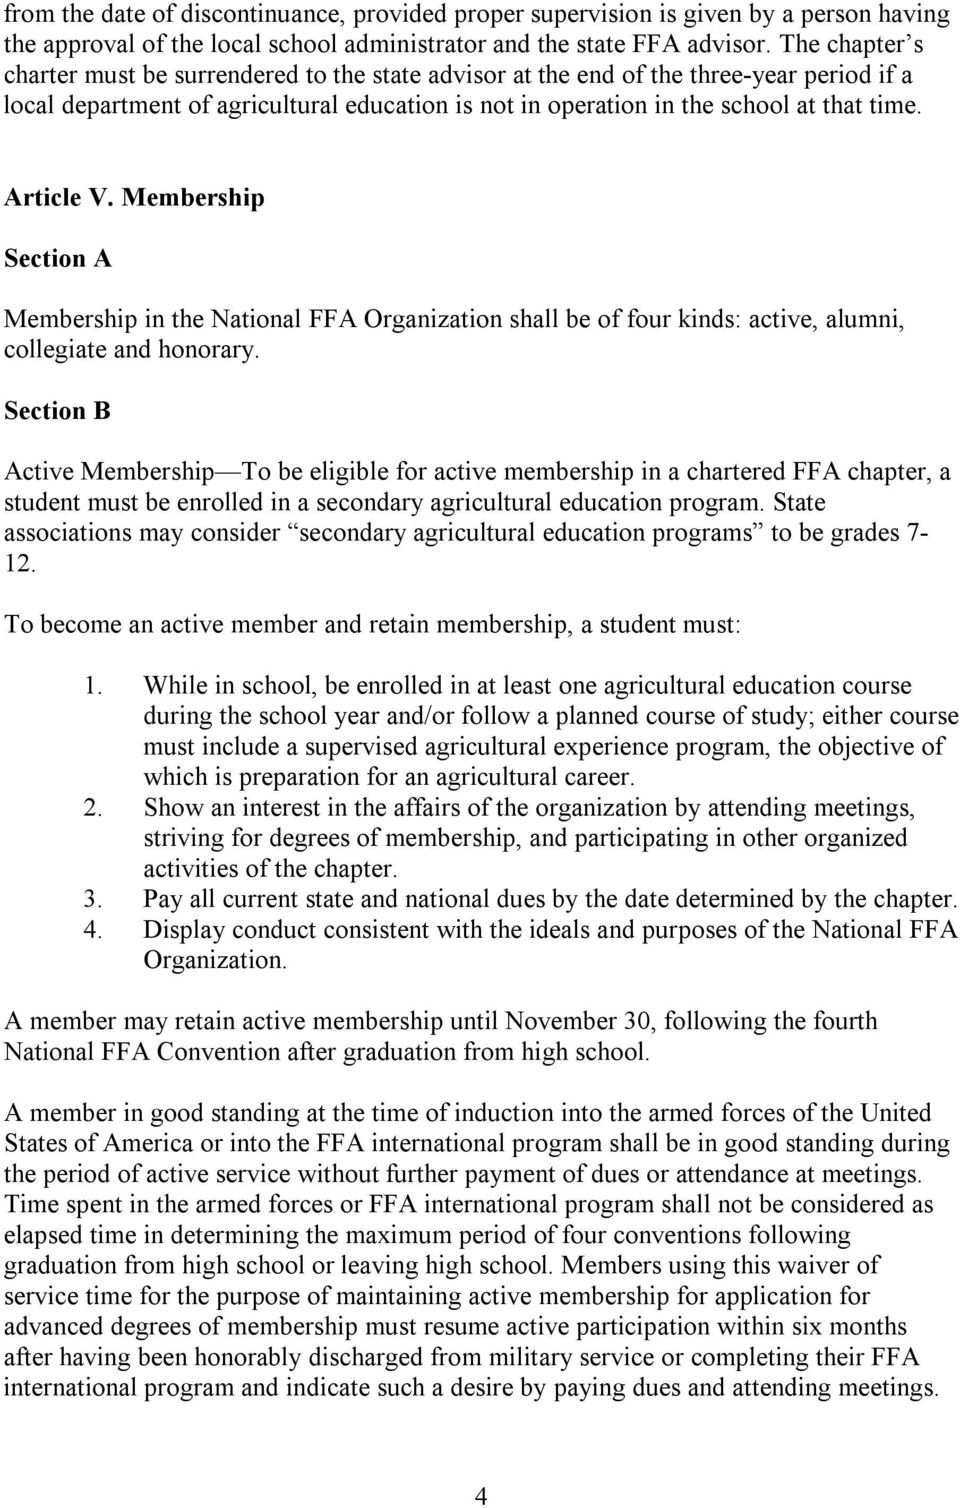 Article V. Membership Membership in the National FFA Organization shall be of four kinds: active, alumni, collegiate and honorary.